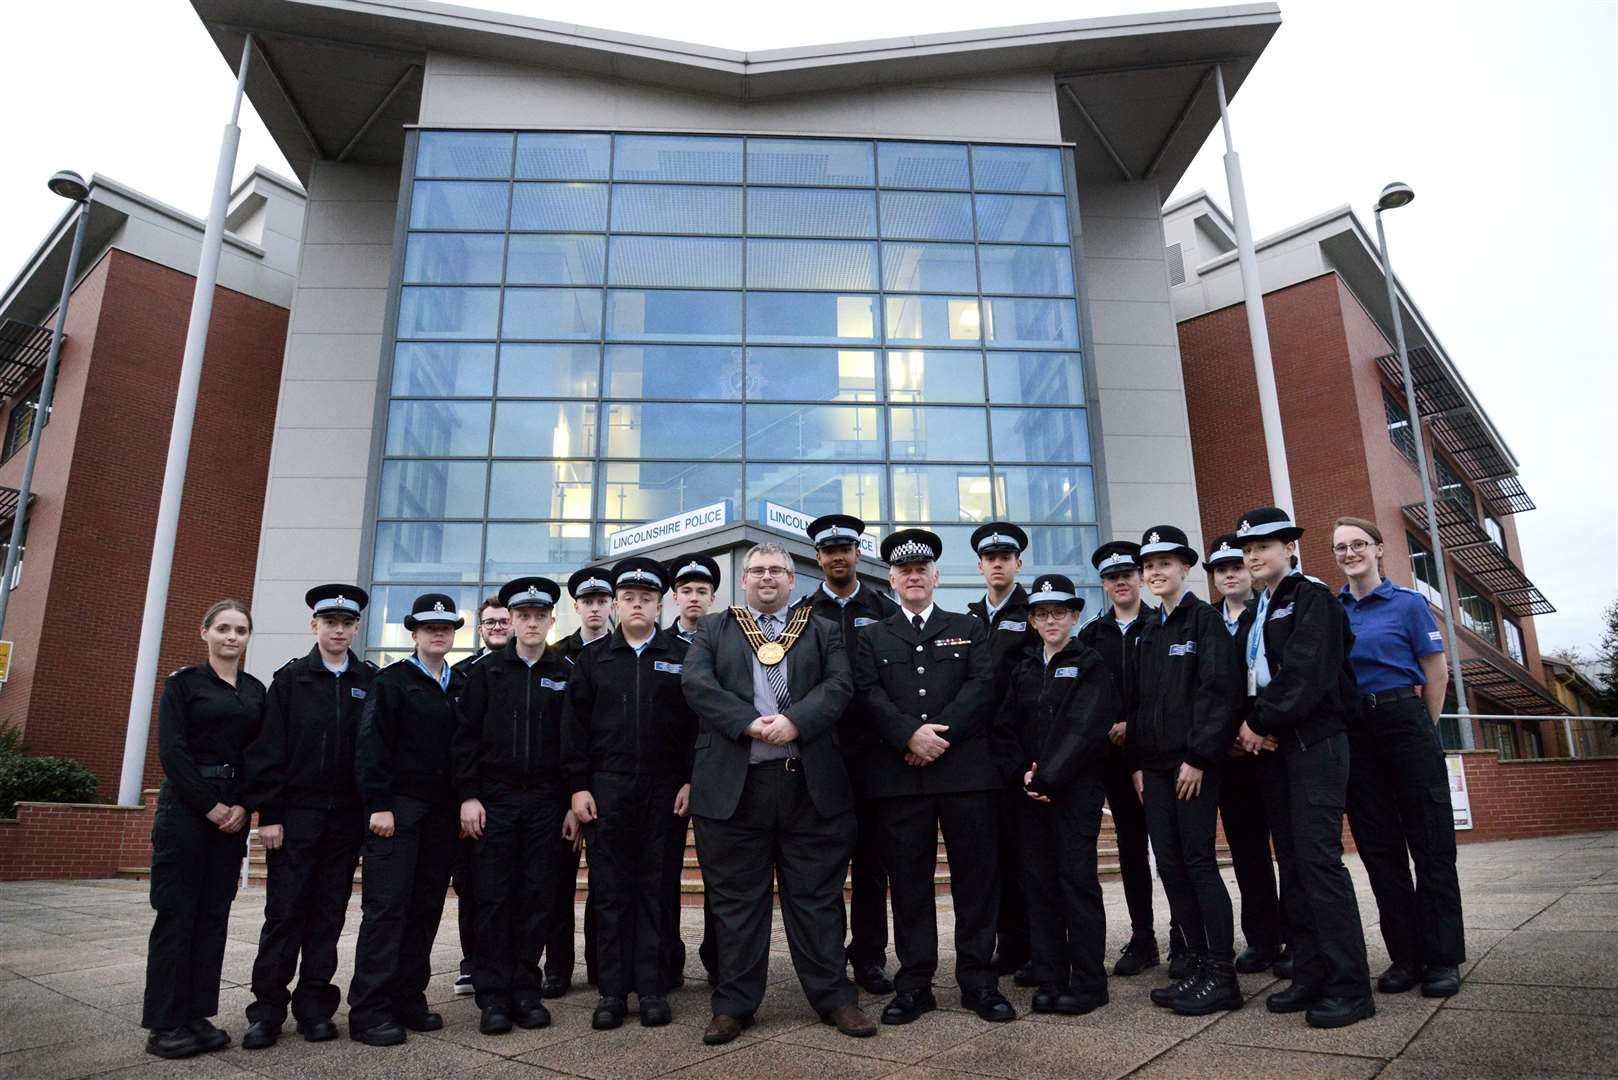 Mayor of Grantham Councillor Adam Stokes presented the new police recruits with a certificate at a ceremony last week. (17398319)